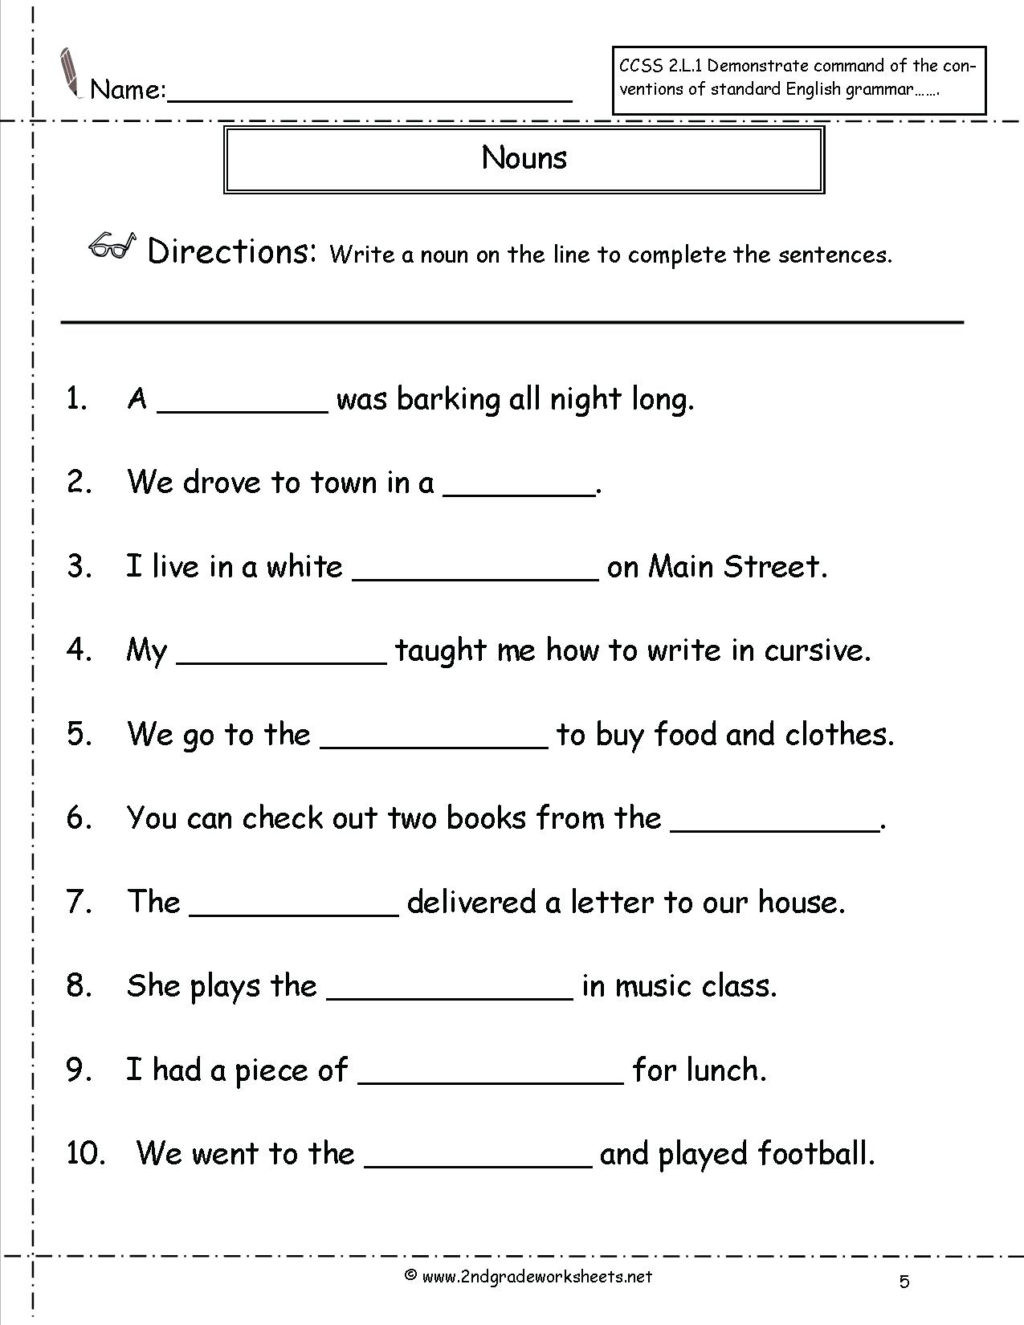 Grammar Worksheets 2nd Grade Printable Worksheet 2nd Grade Reading Prehension Worksheets Pdf